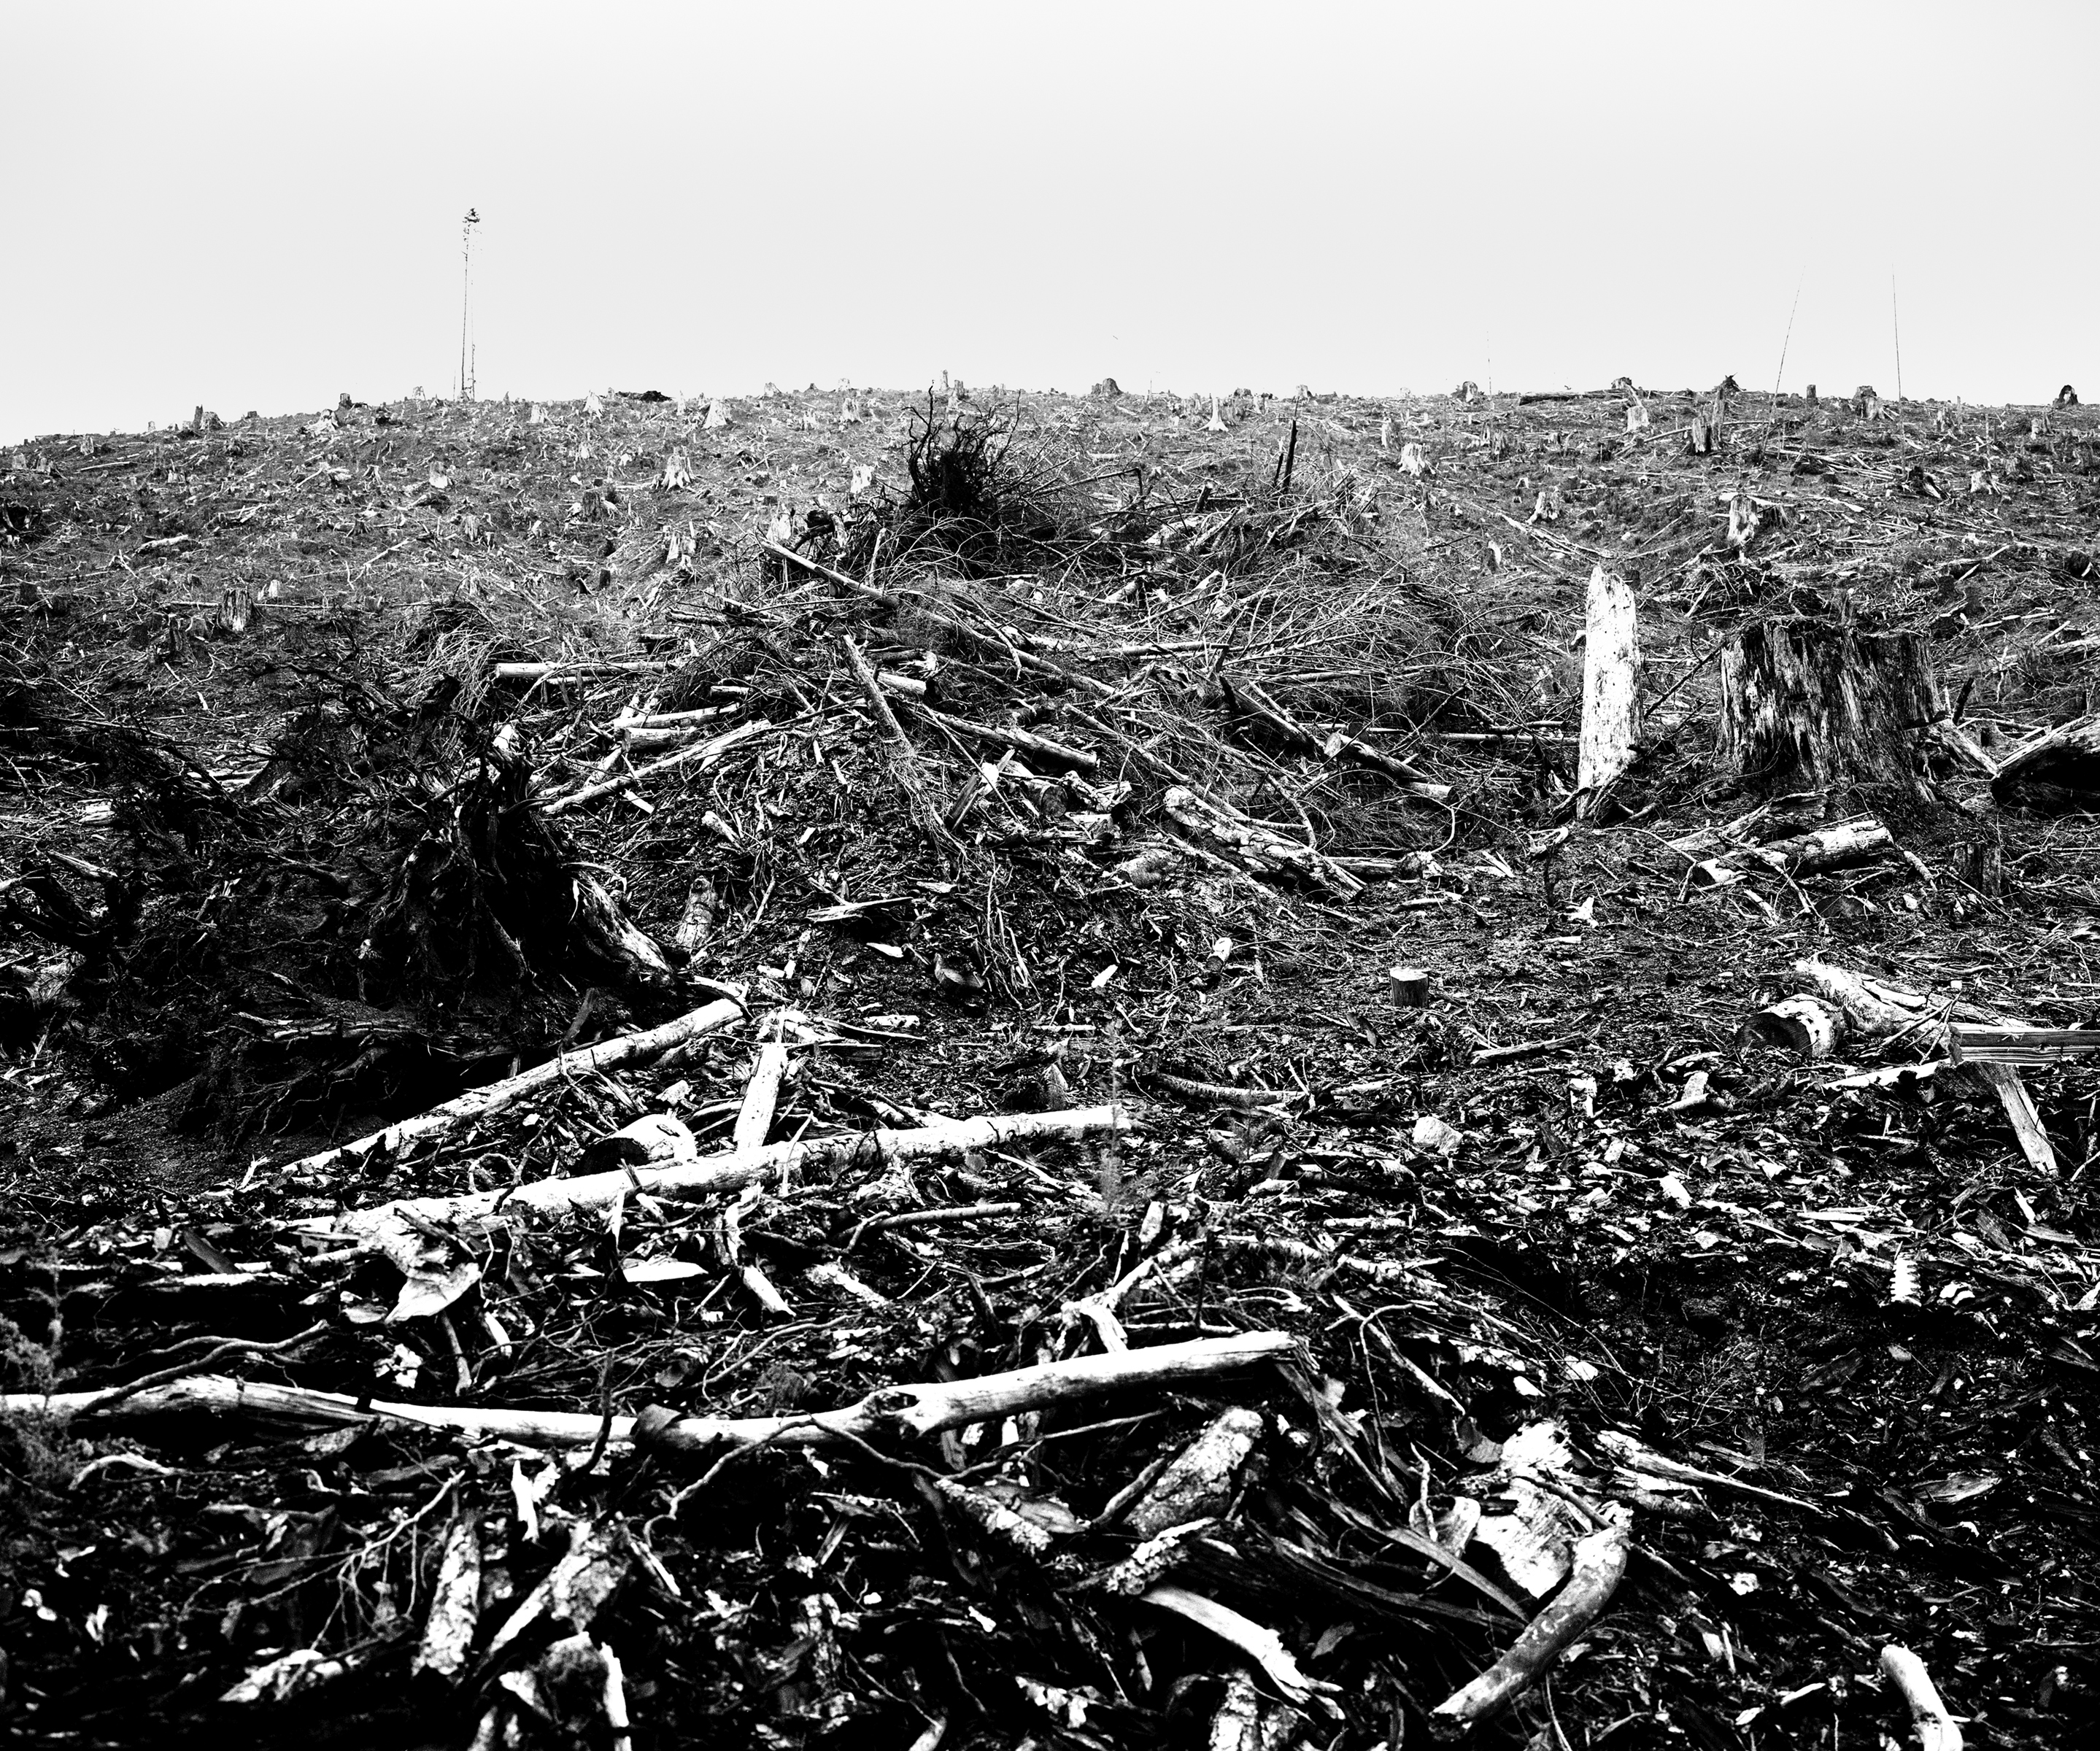 A field of mangled wood, branches and tree stumps